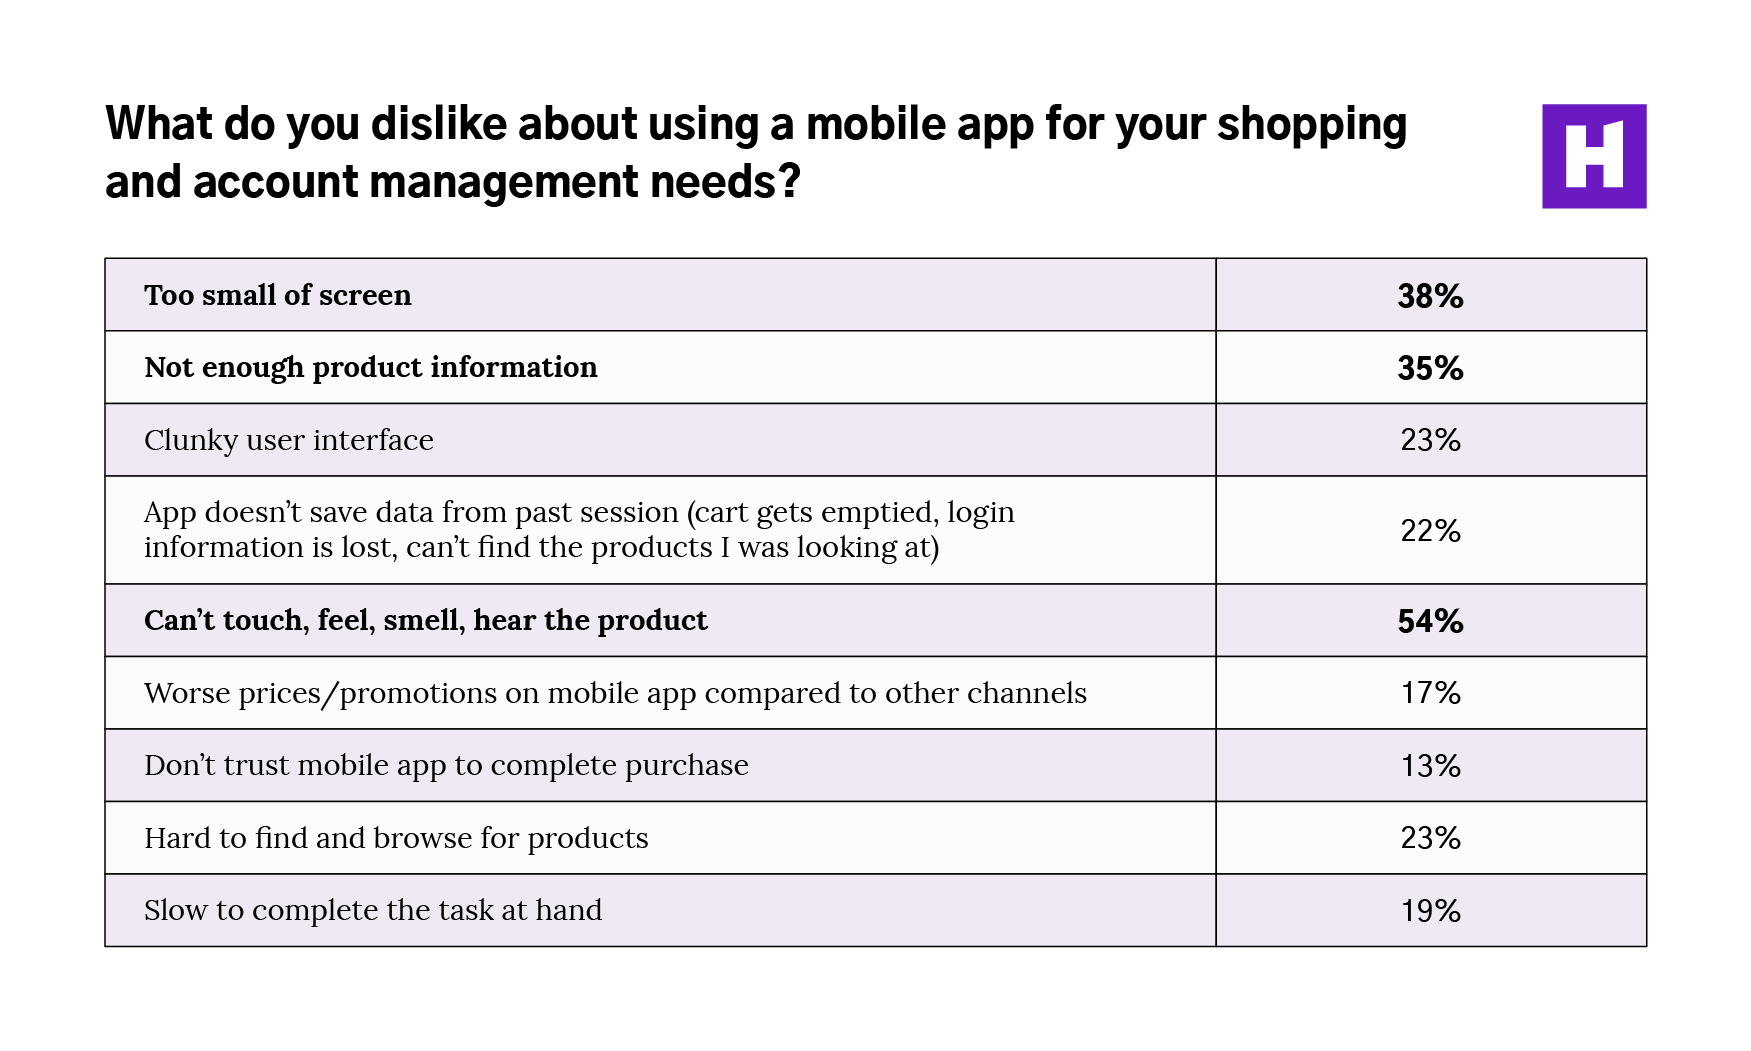 03-What-do-you-dislike-about-using-a-mobile-app-for-your-shopping-needs